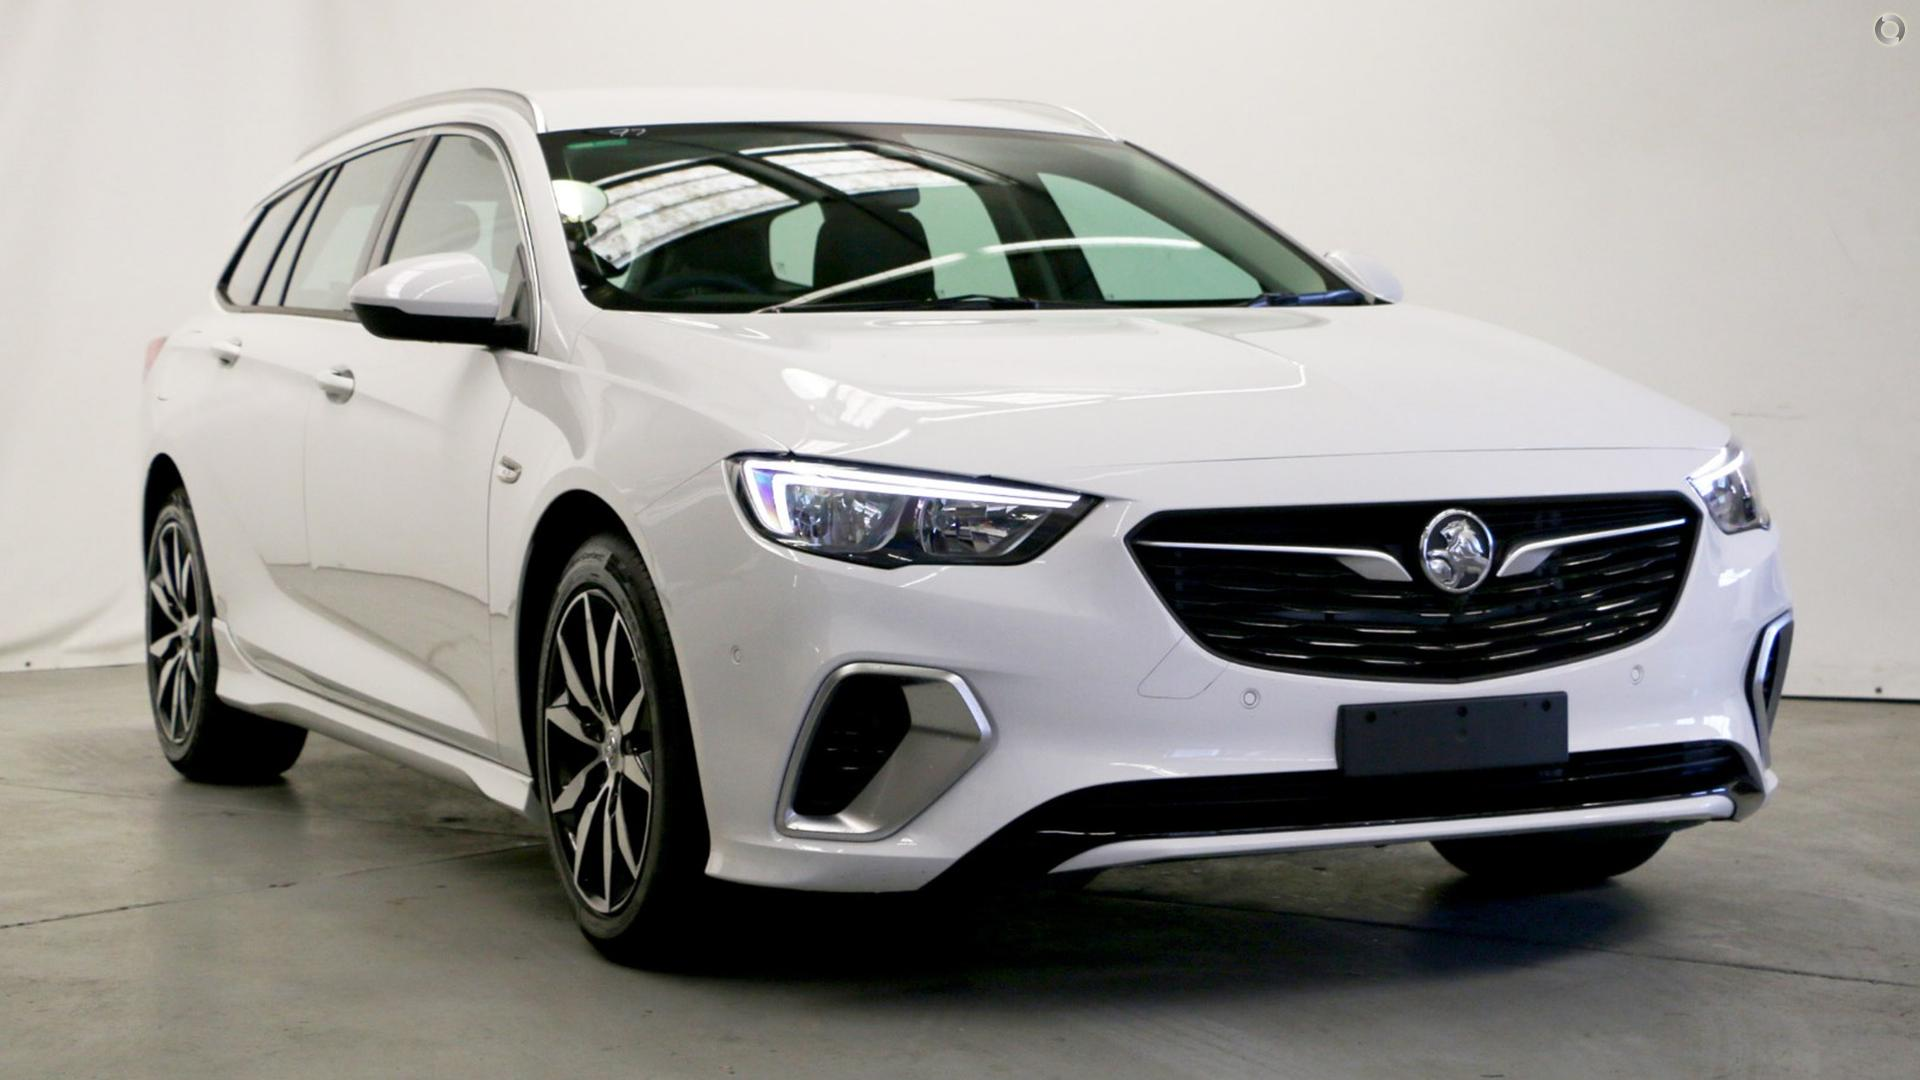 2018 Holden Commodore ZB